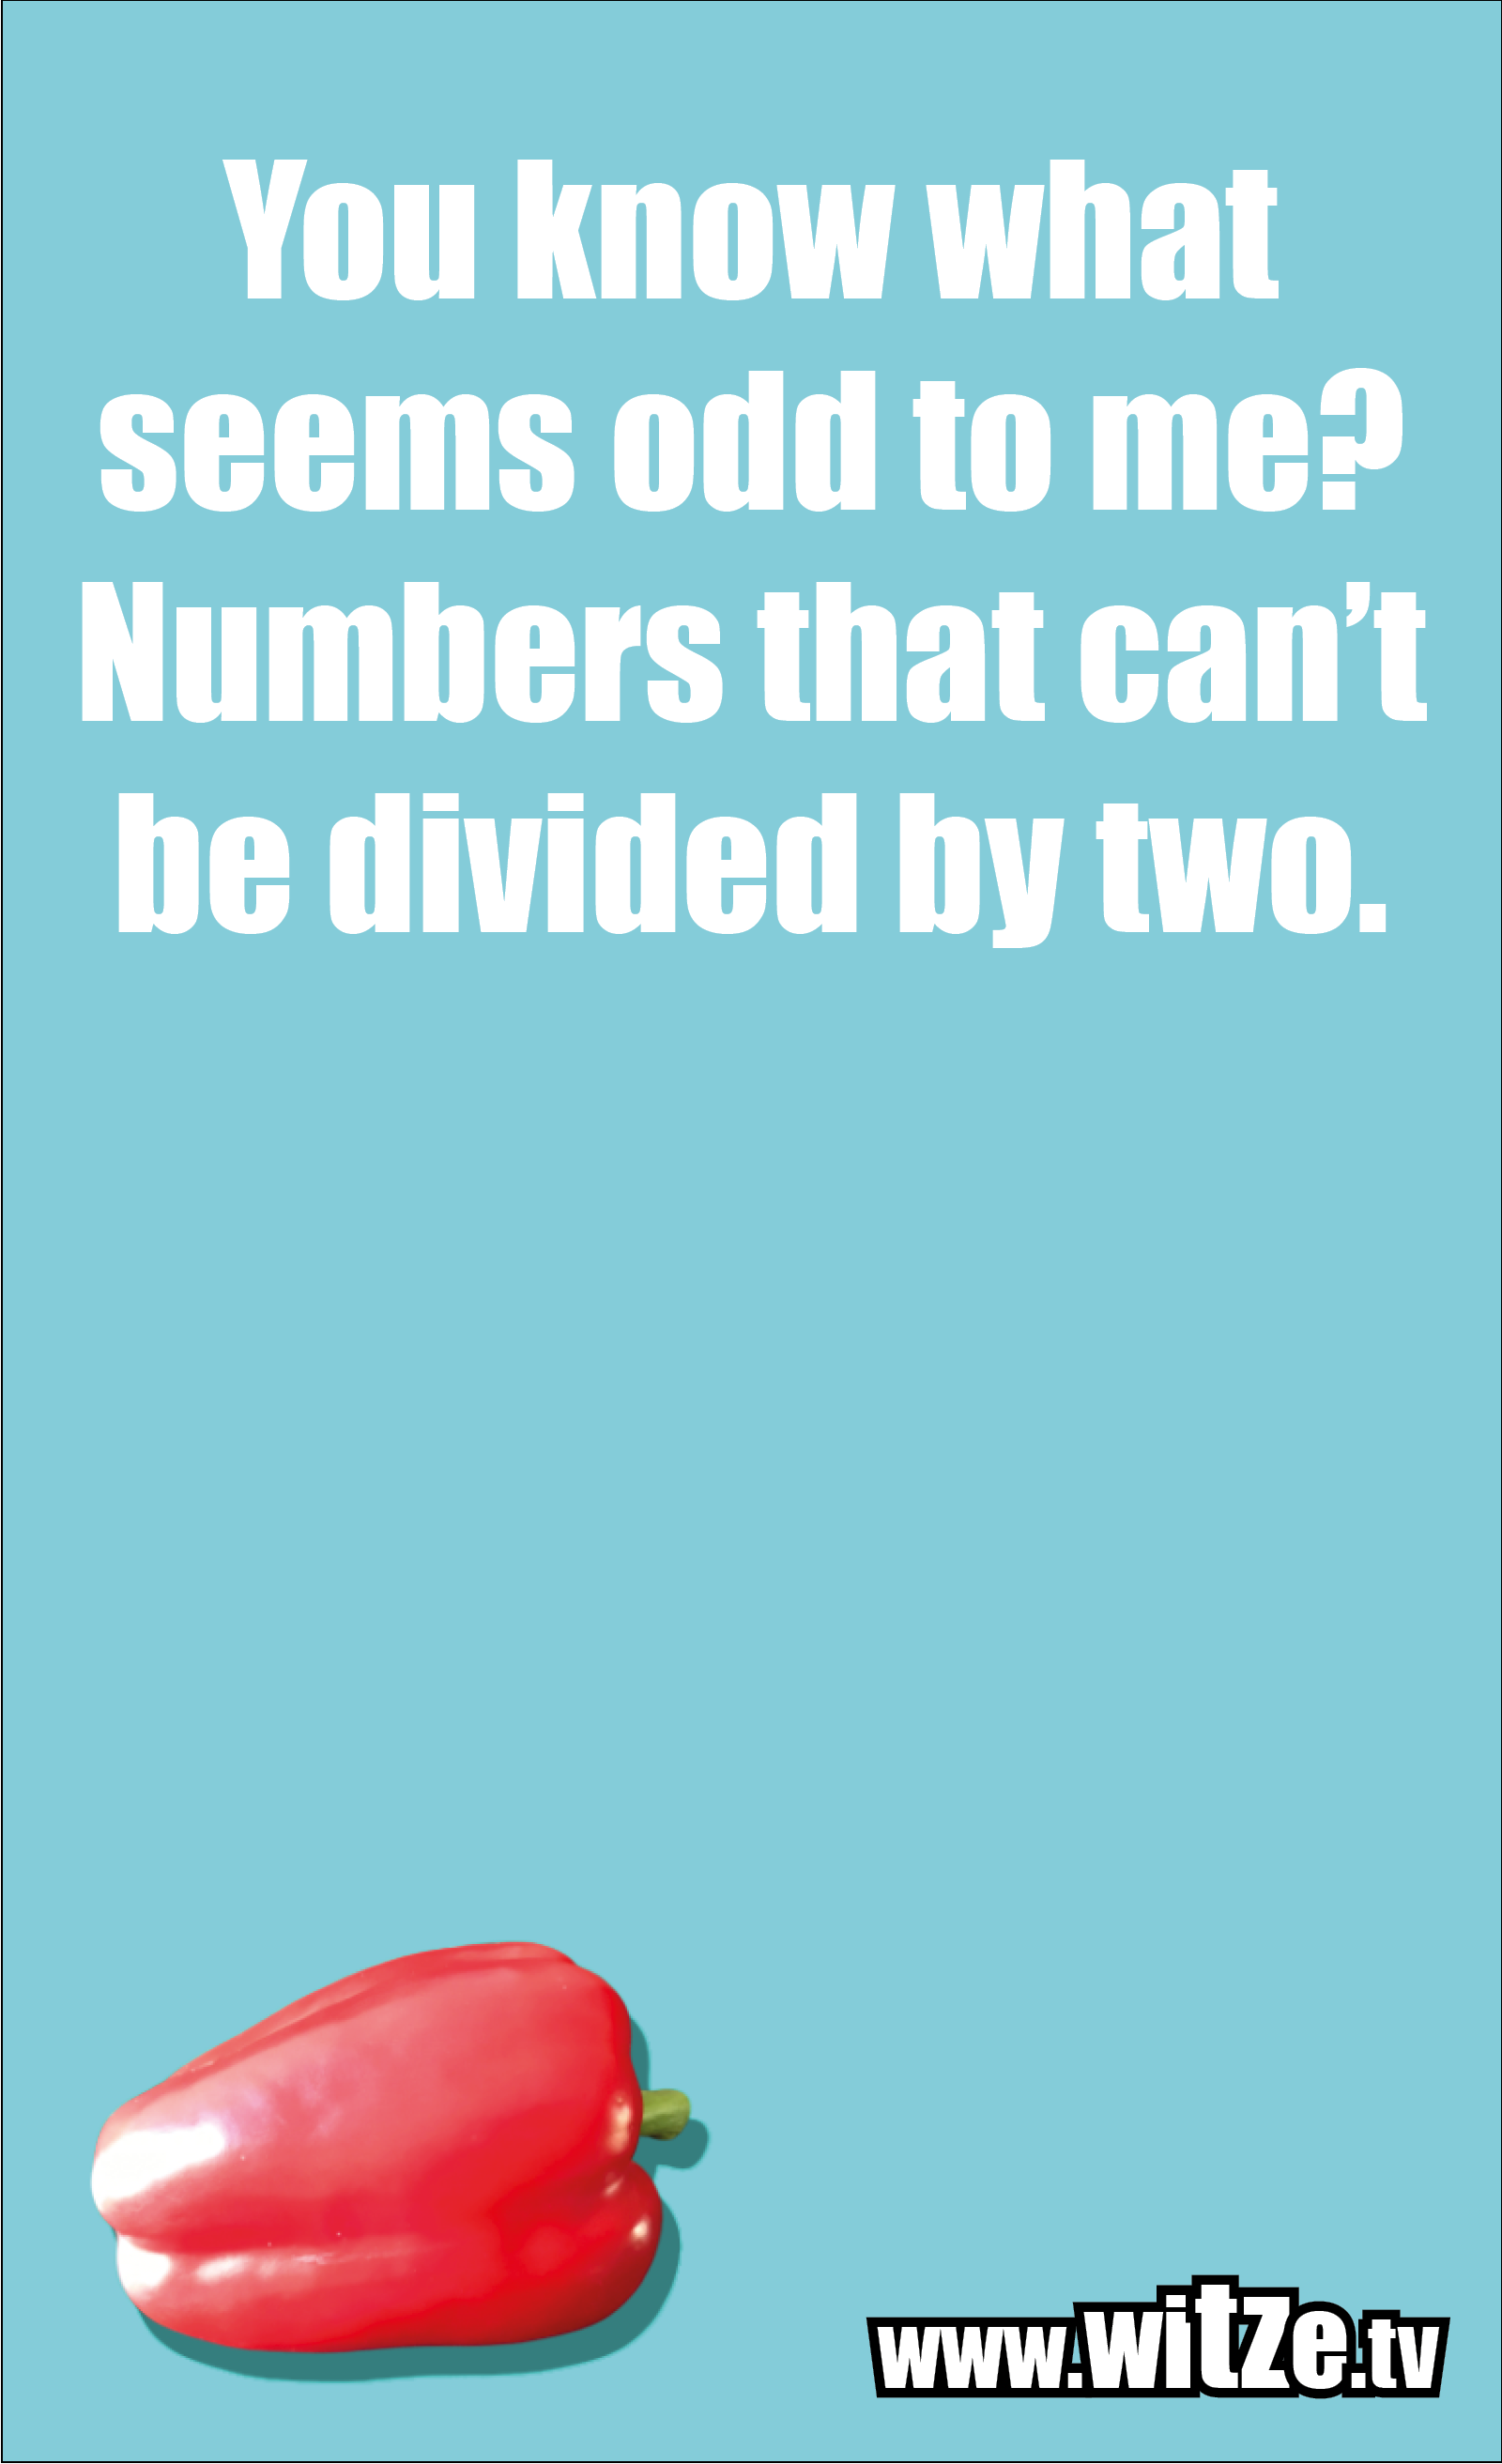 Math joke… You know what seems odd to me? Numbers that can't be divided by two.